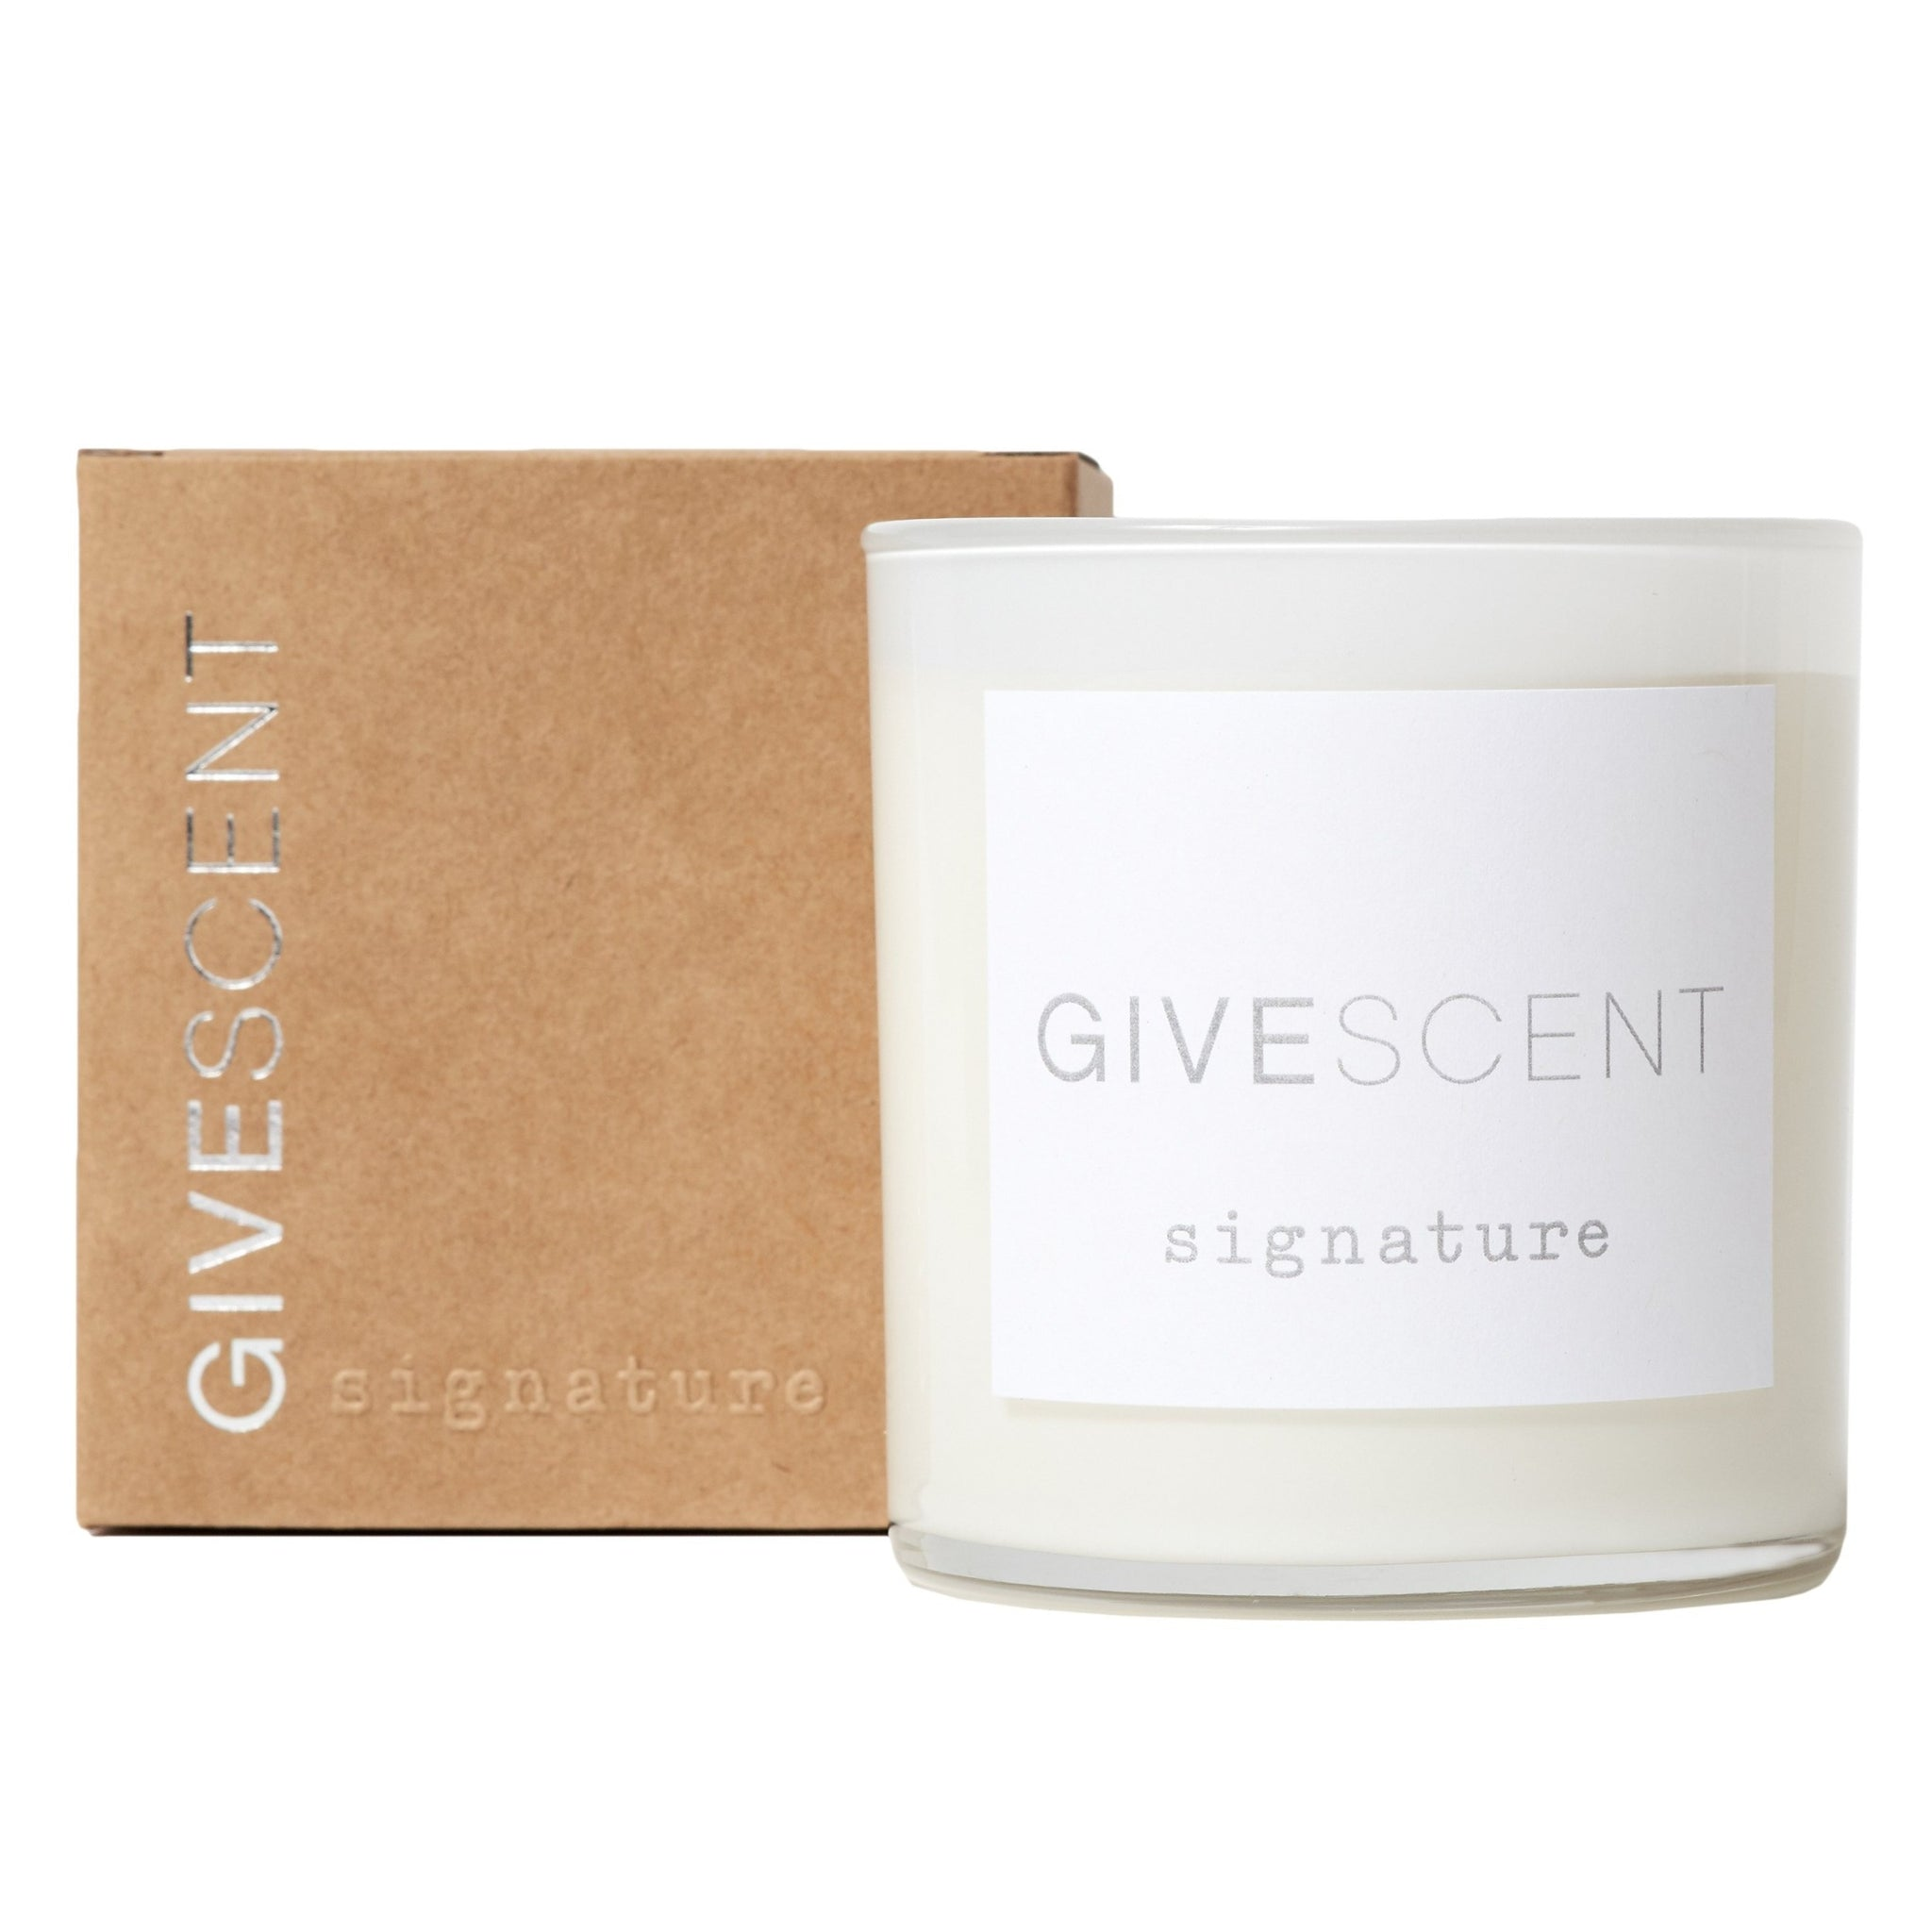 GIVESCENT signature candle